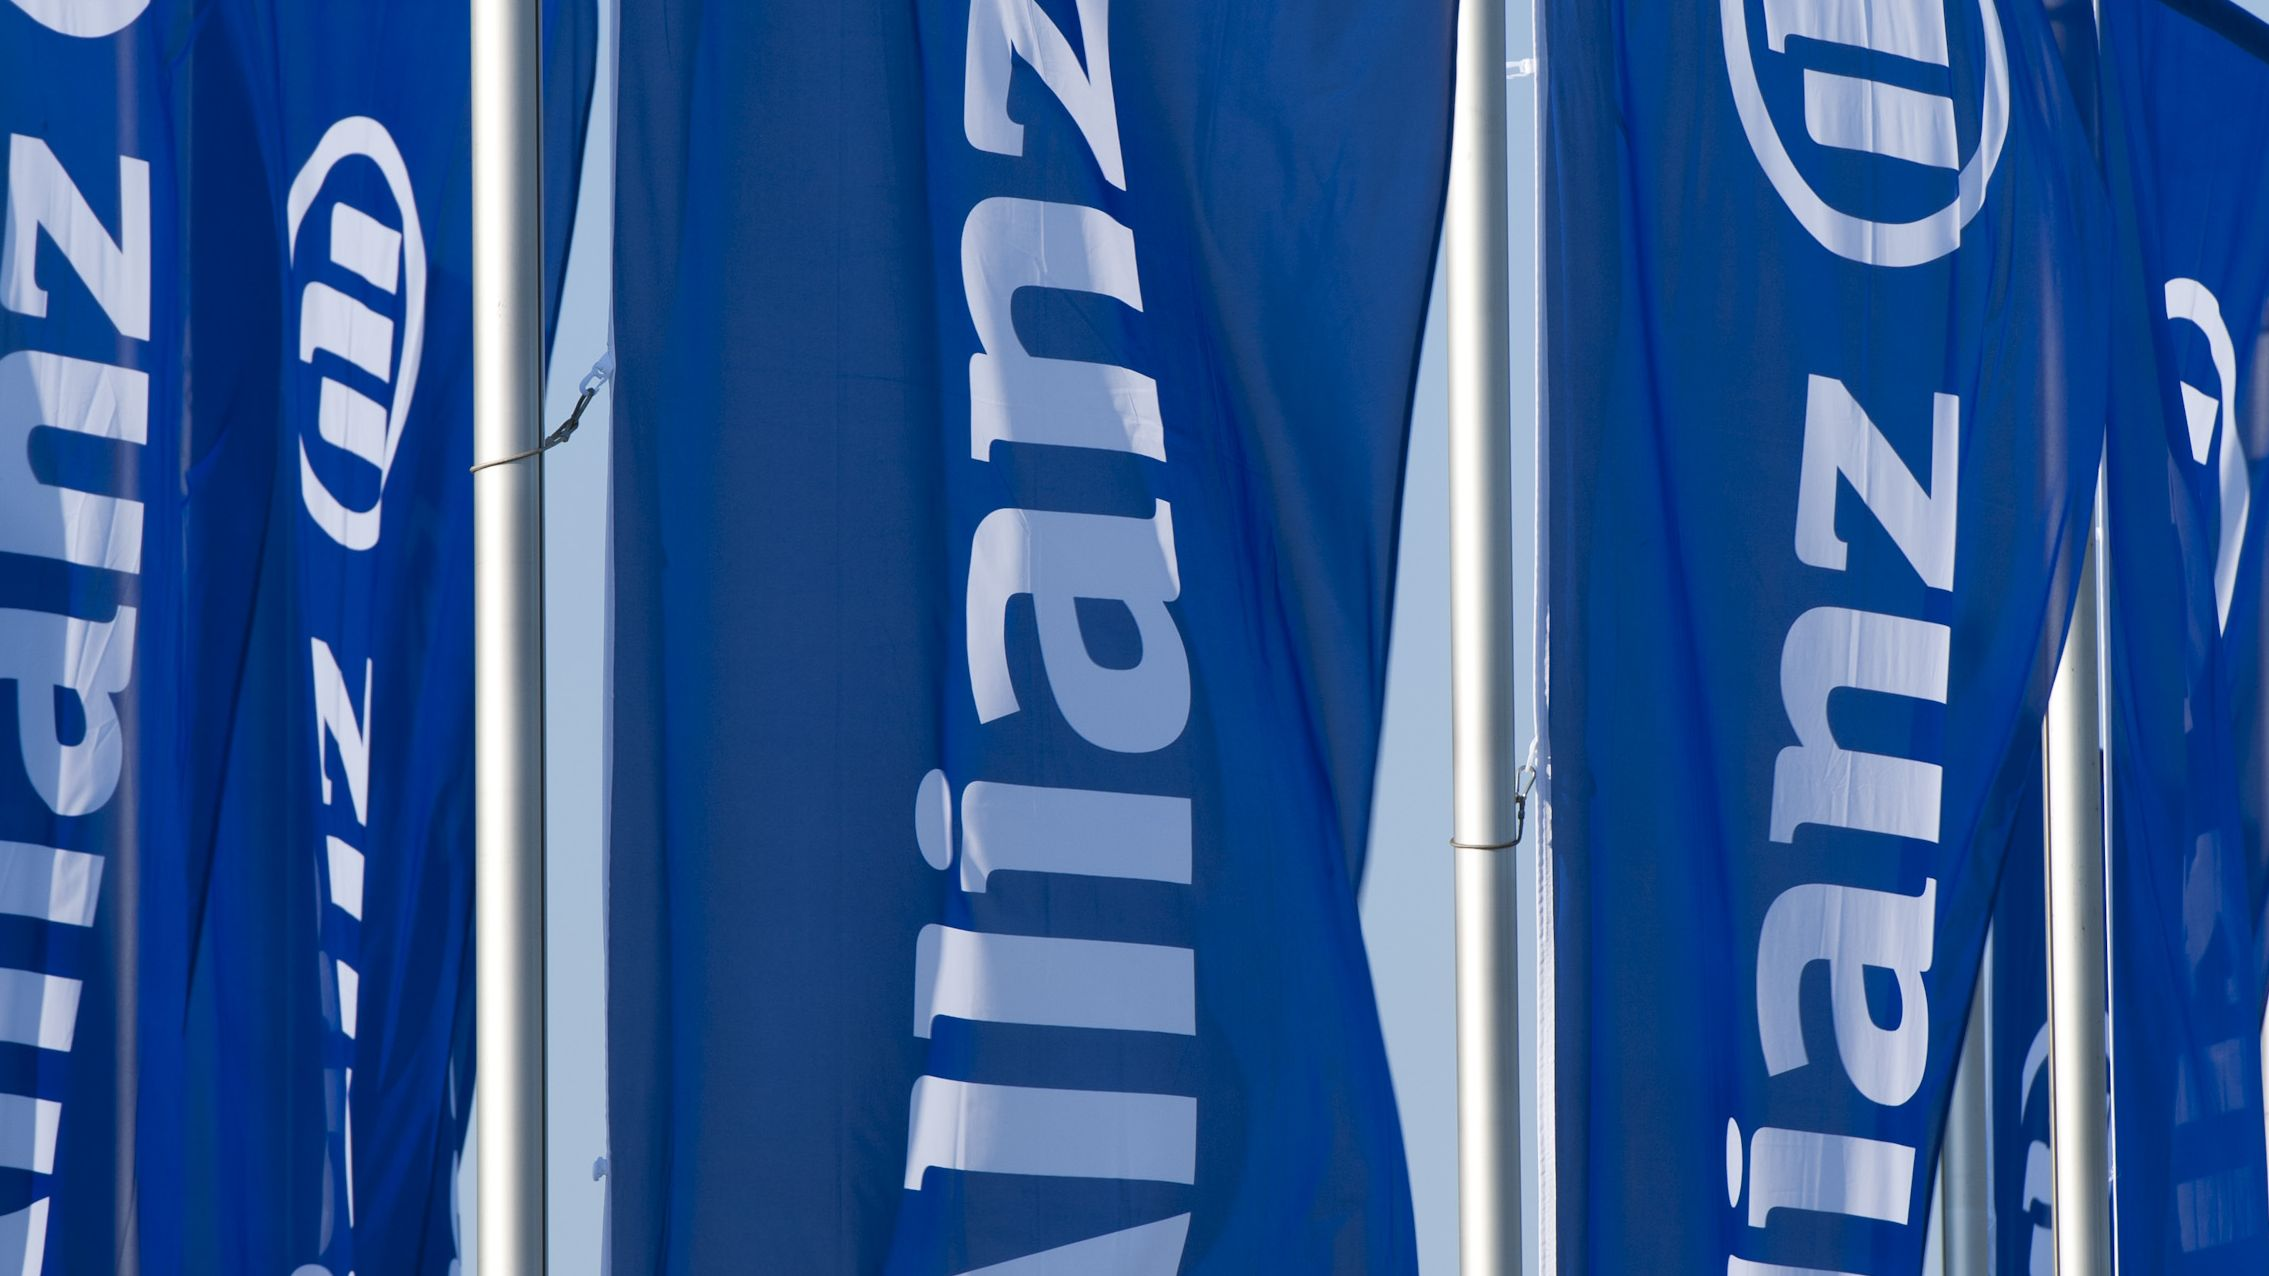 Bei der Allianz weht im Marketing ein neuer Wind